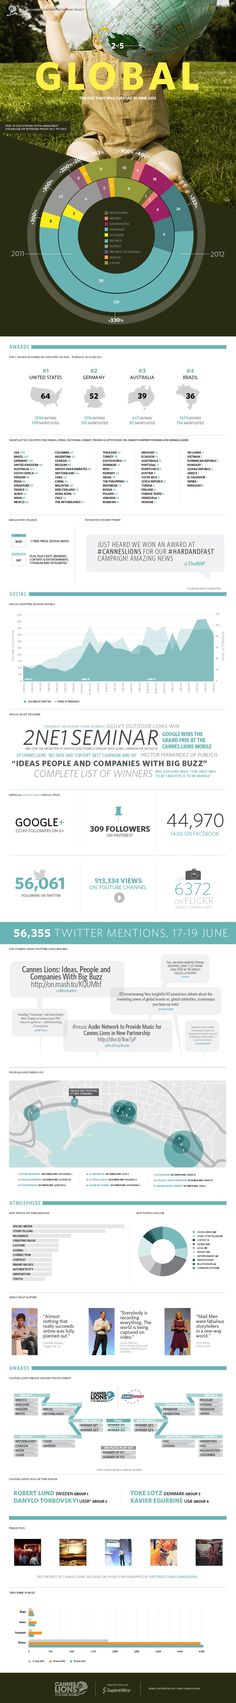 The 2012 Cannes Lions Daily Infographic Project: Tuesday 19 June.